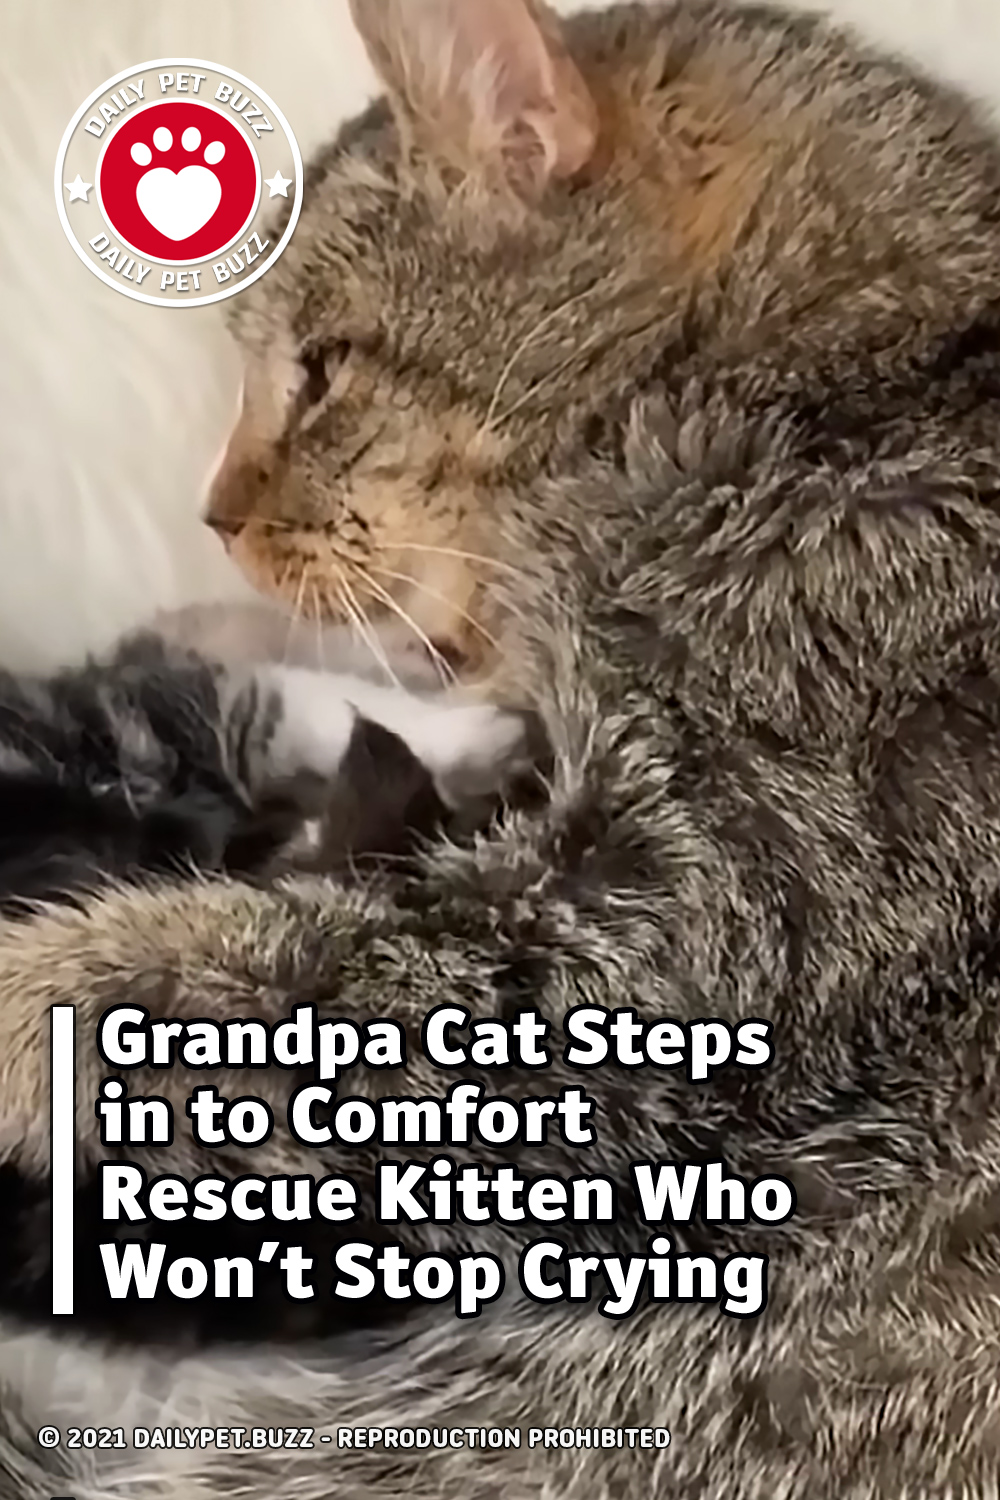 Grandpa Cat Steps in to Comfort Rescue Kitten Who Won't Stop Crying